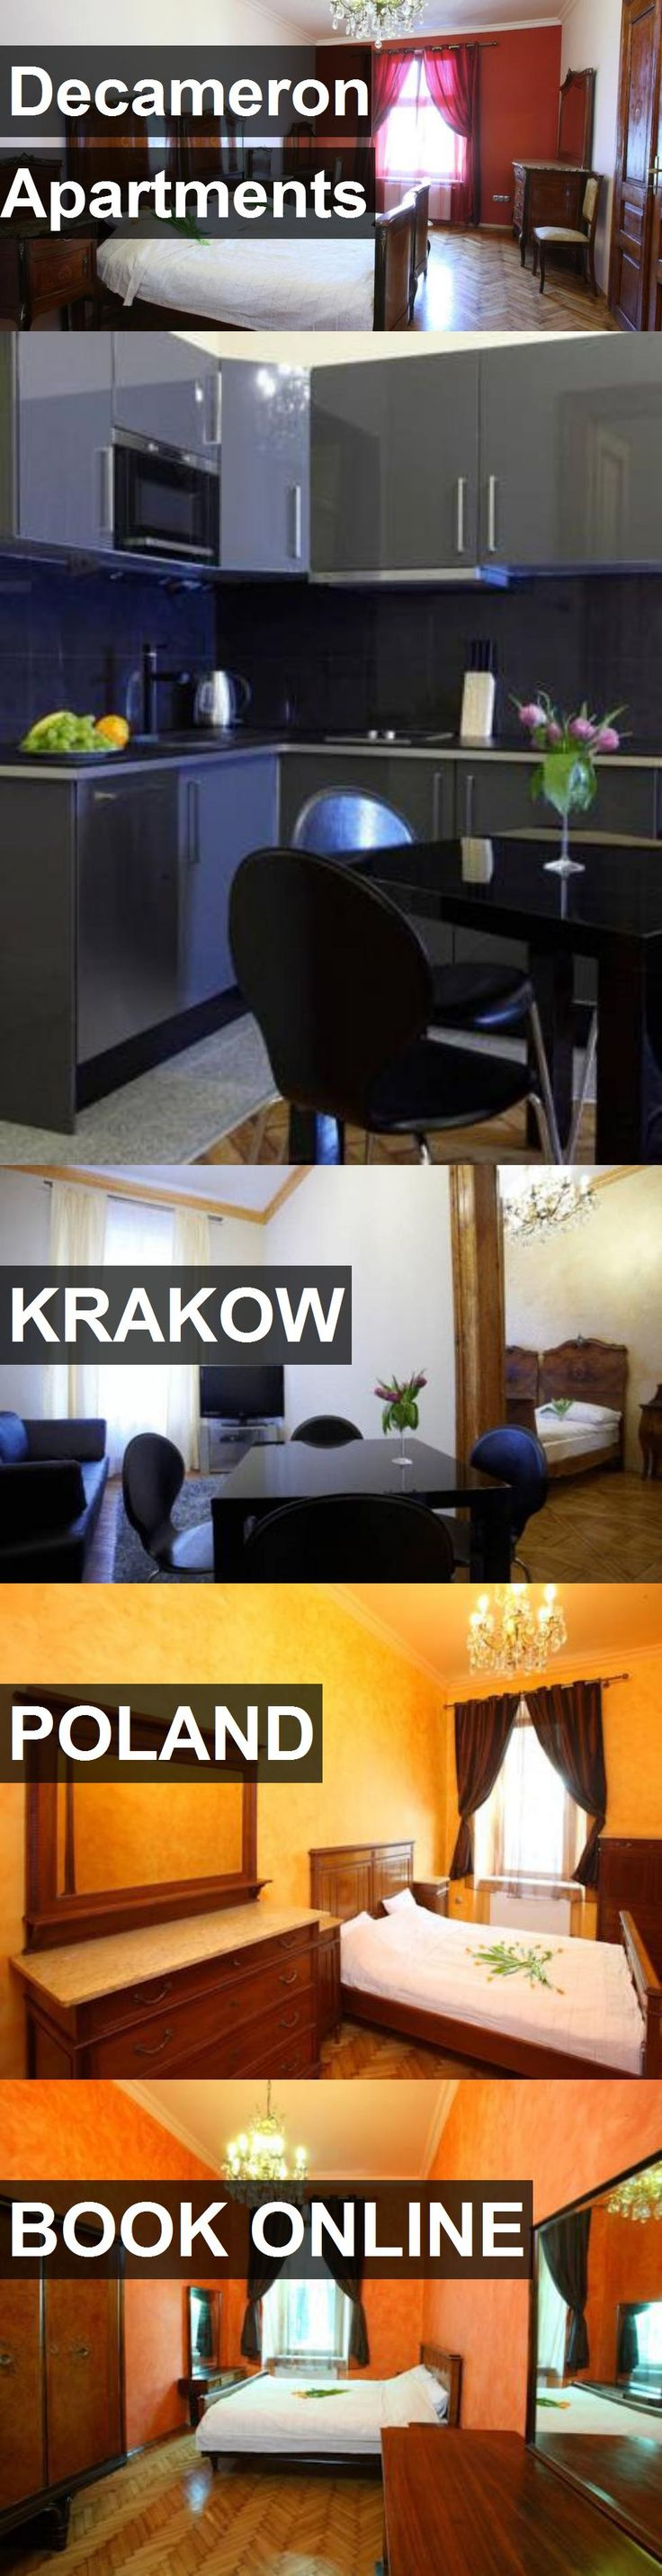 Decameron Apartments in Krakow, Poland. For more information, photos, reviews and best prices please follow the link. #Poland #Krakow #travel #vacation #apartment